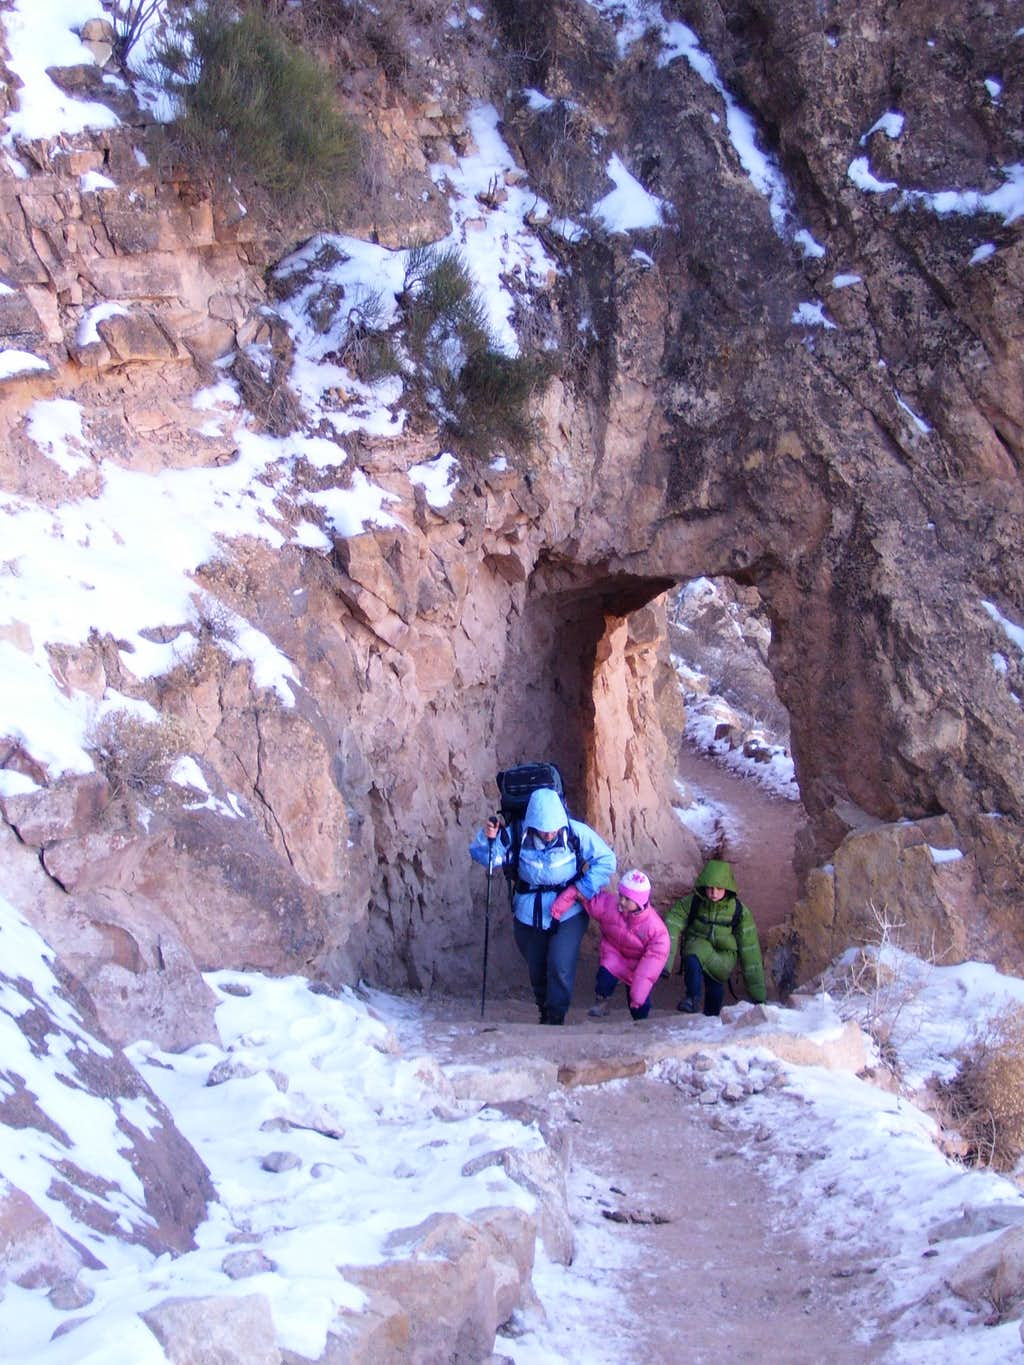 Upper section of Bright Angel Trail